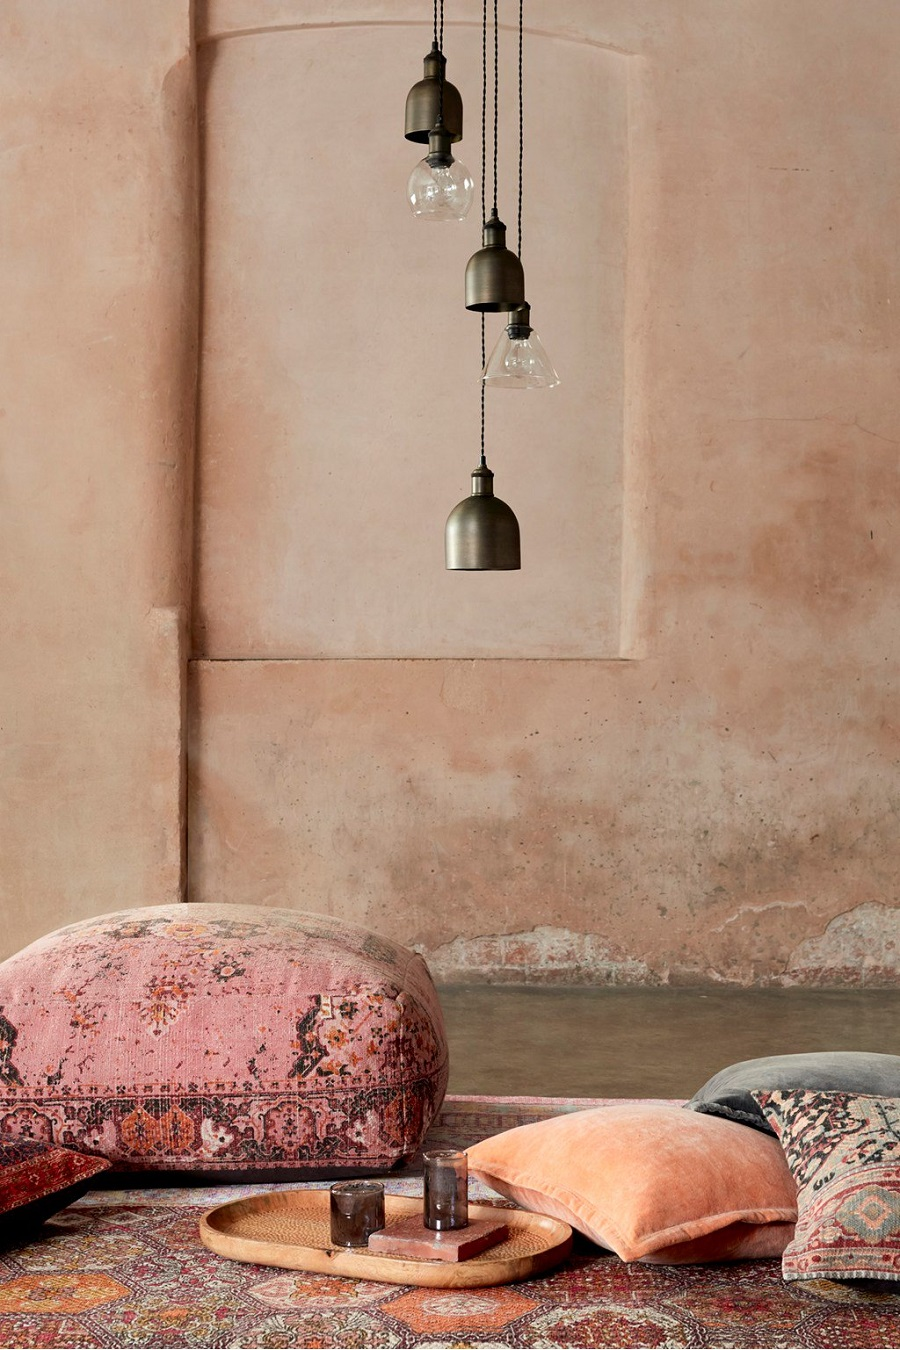 Warm Desert Hues and Natural Materials from French Connection Home This Spring